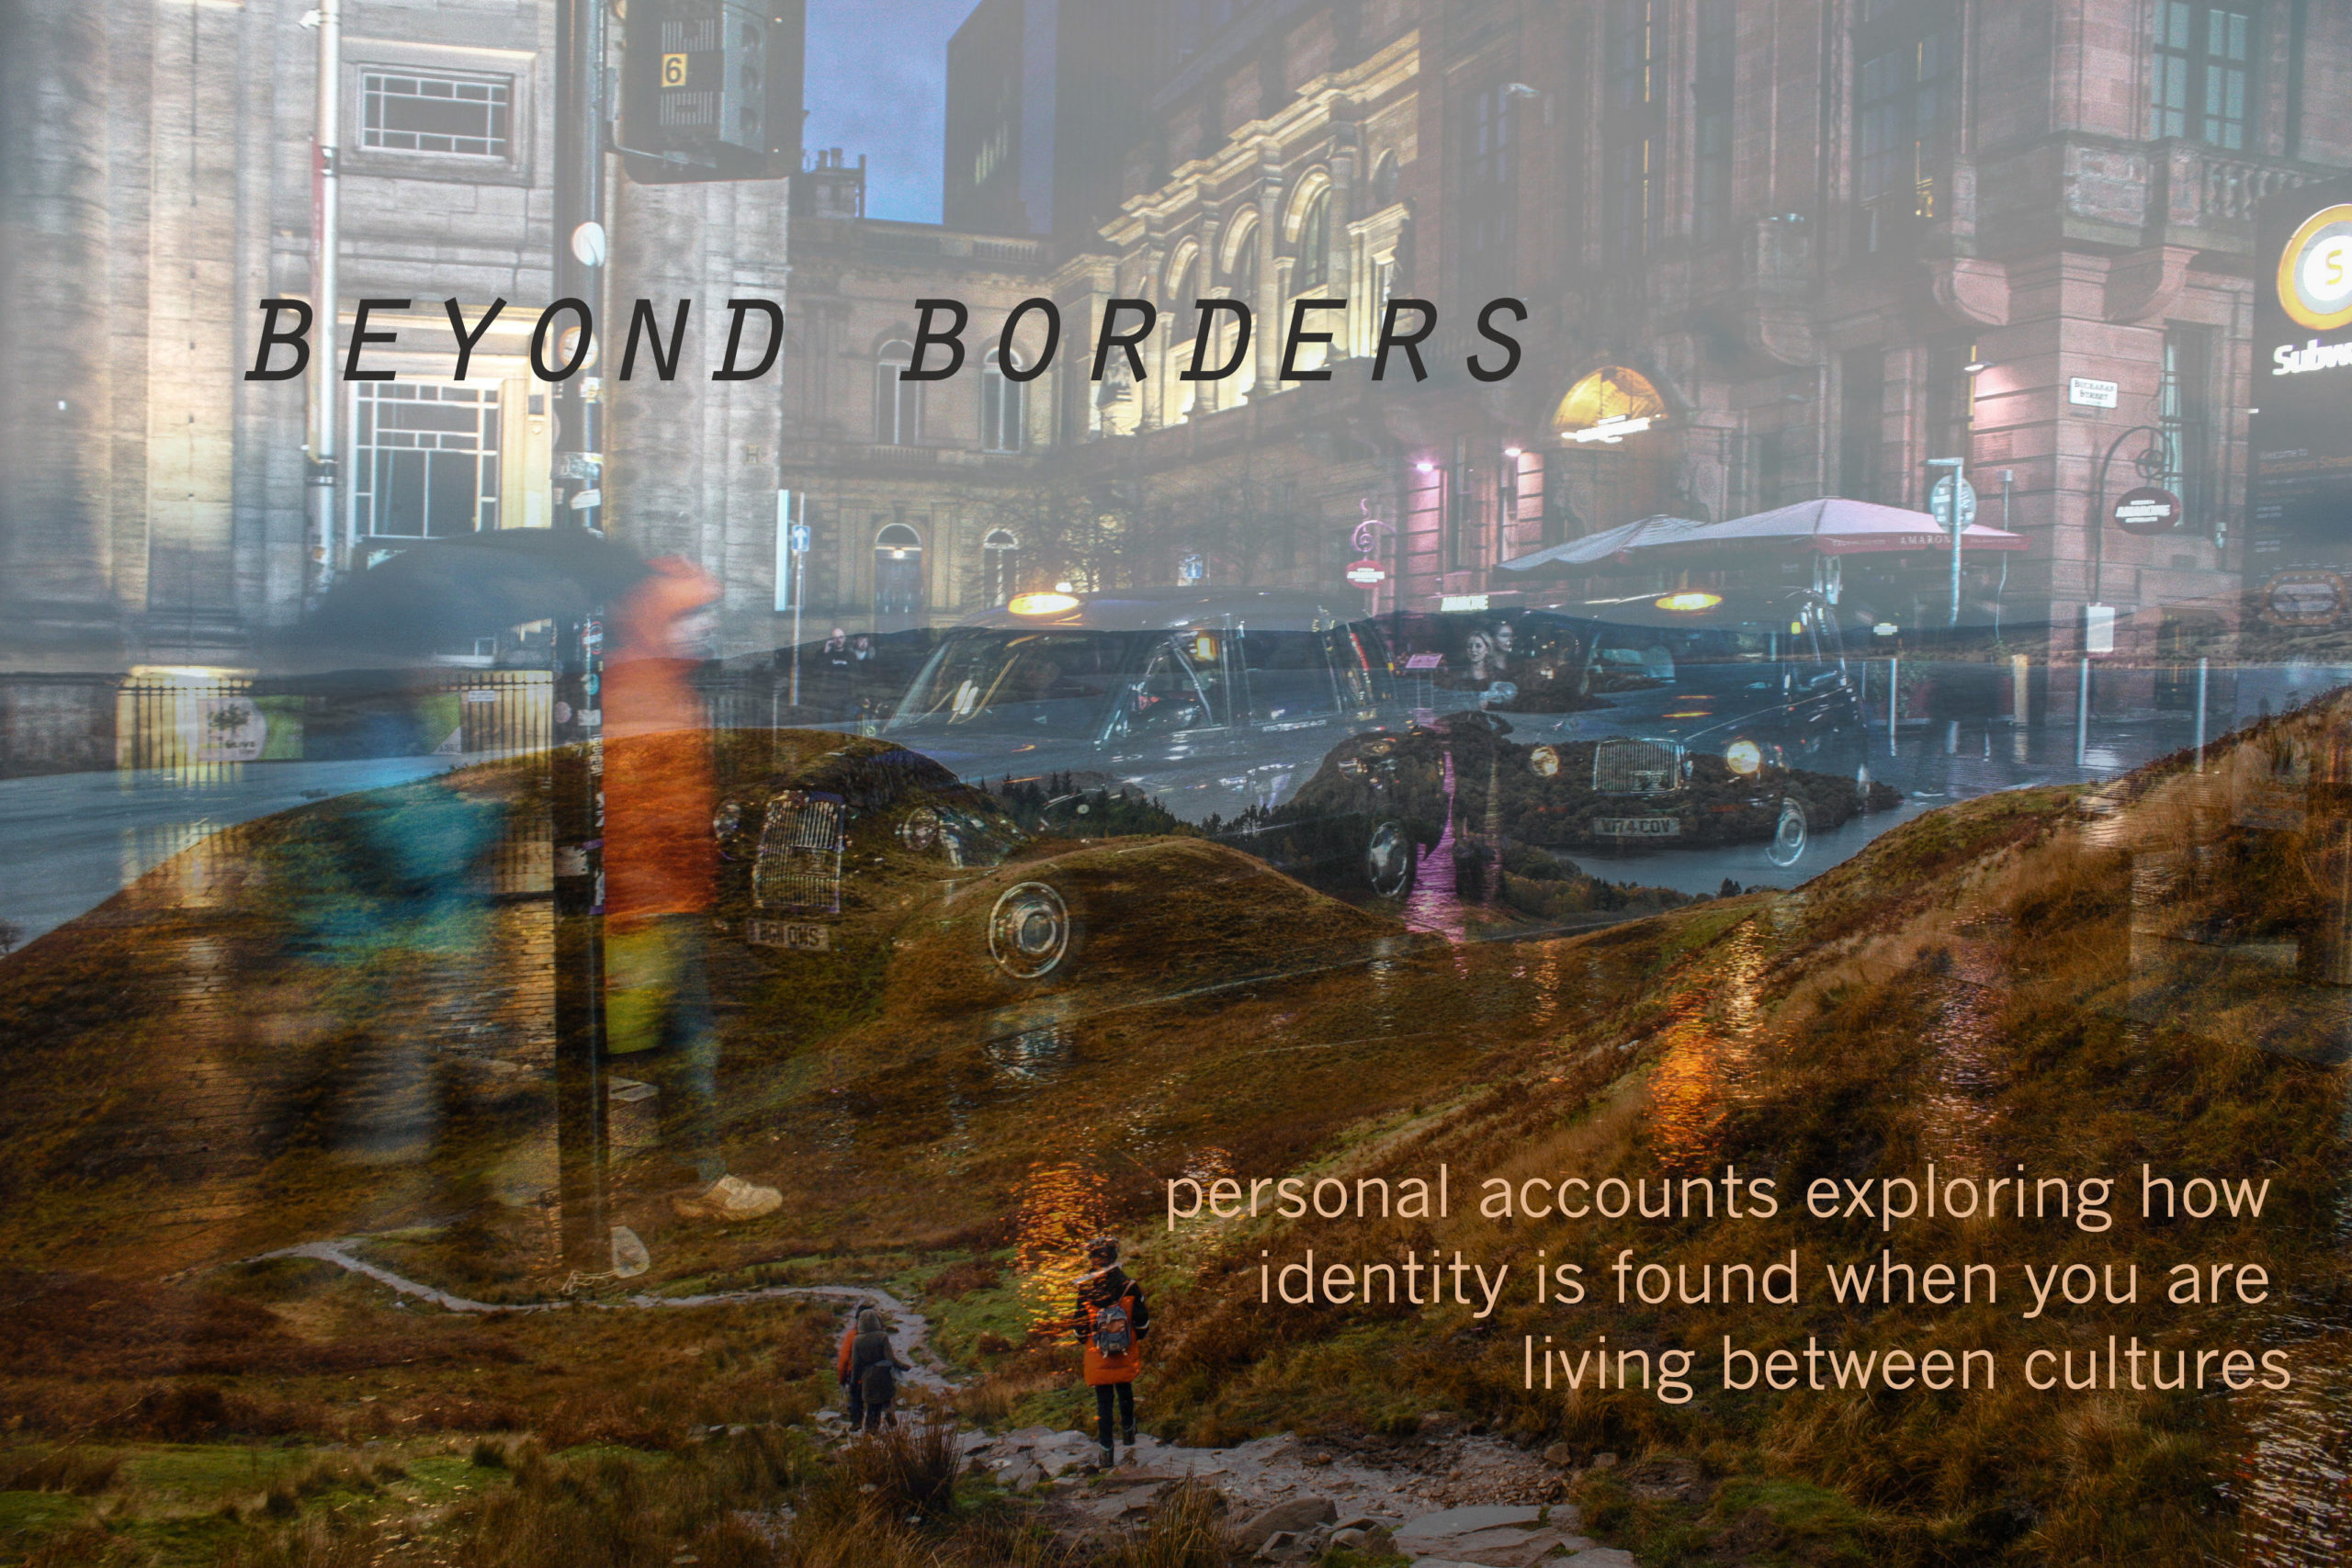 Beyond Borders #4: personal accounts exploring how identity is found when you are living between cultures